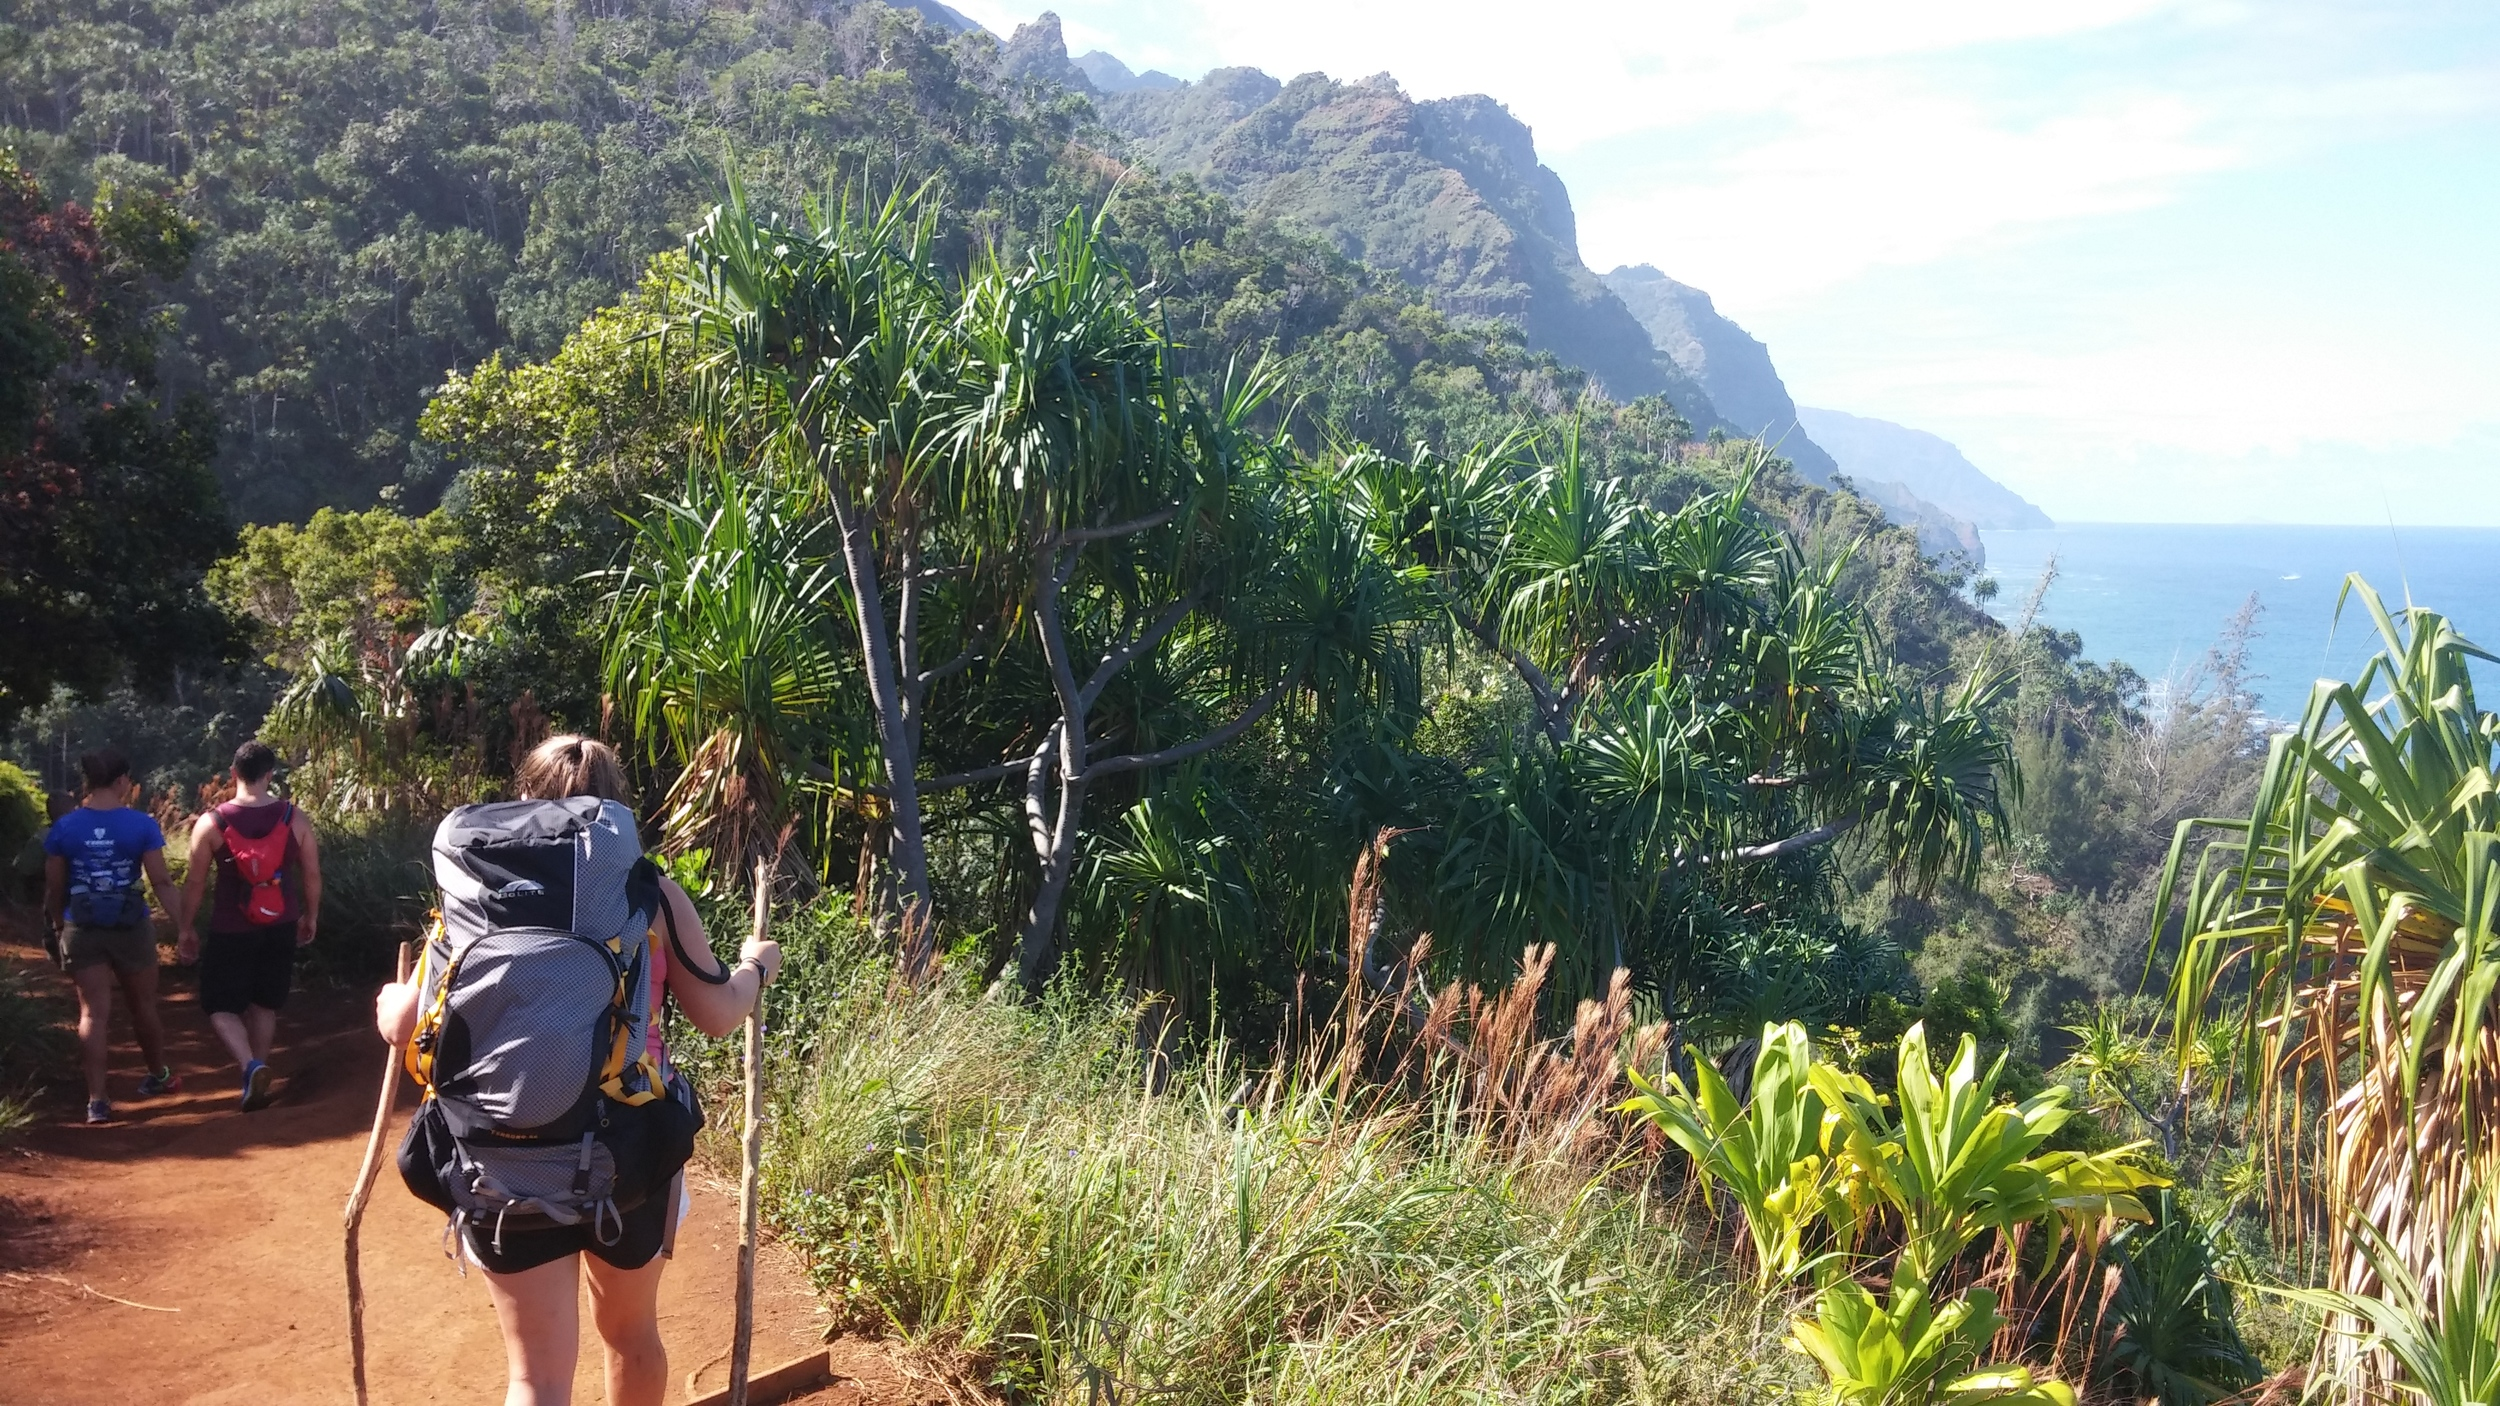 First day on the Kalalau.